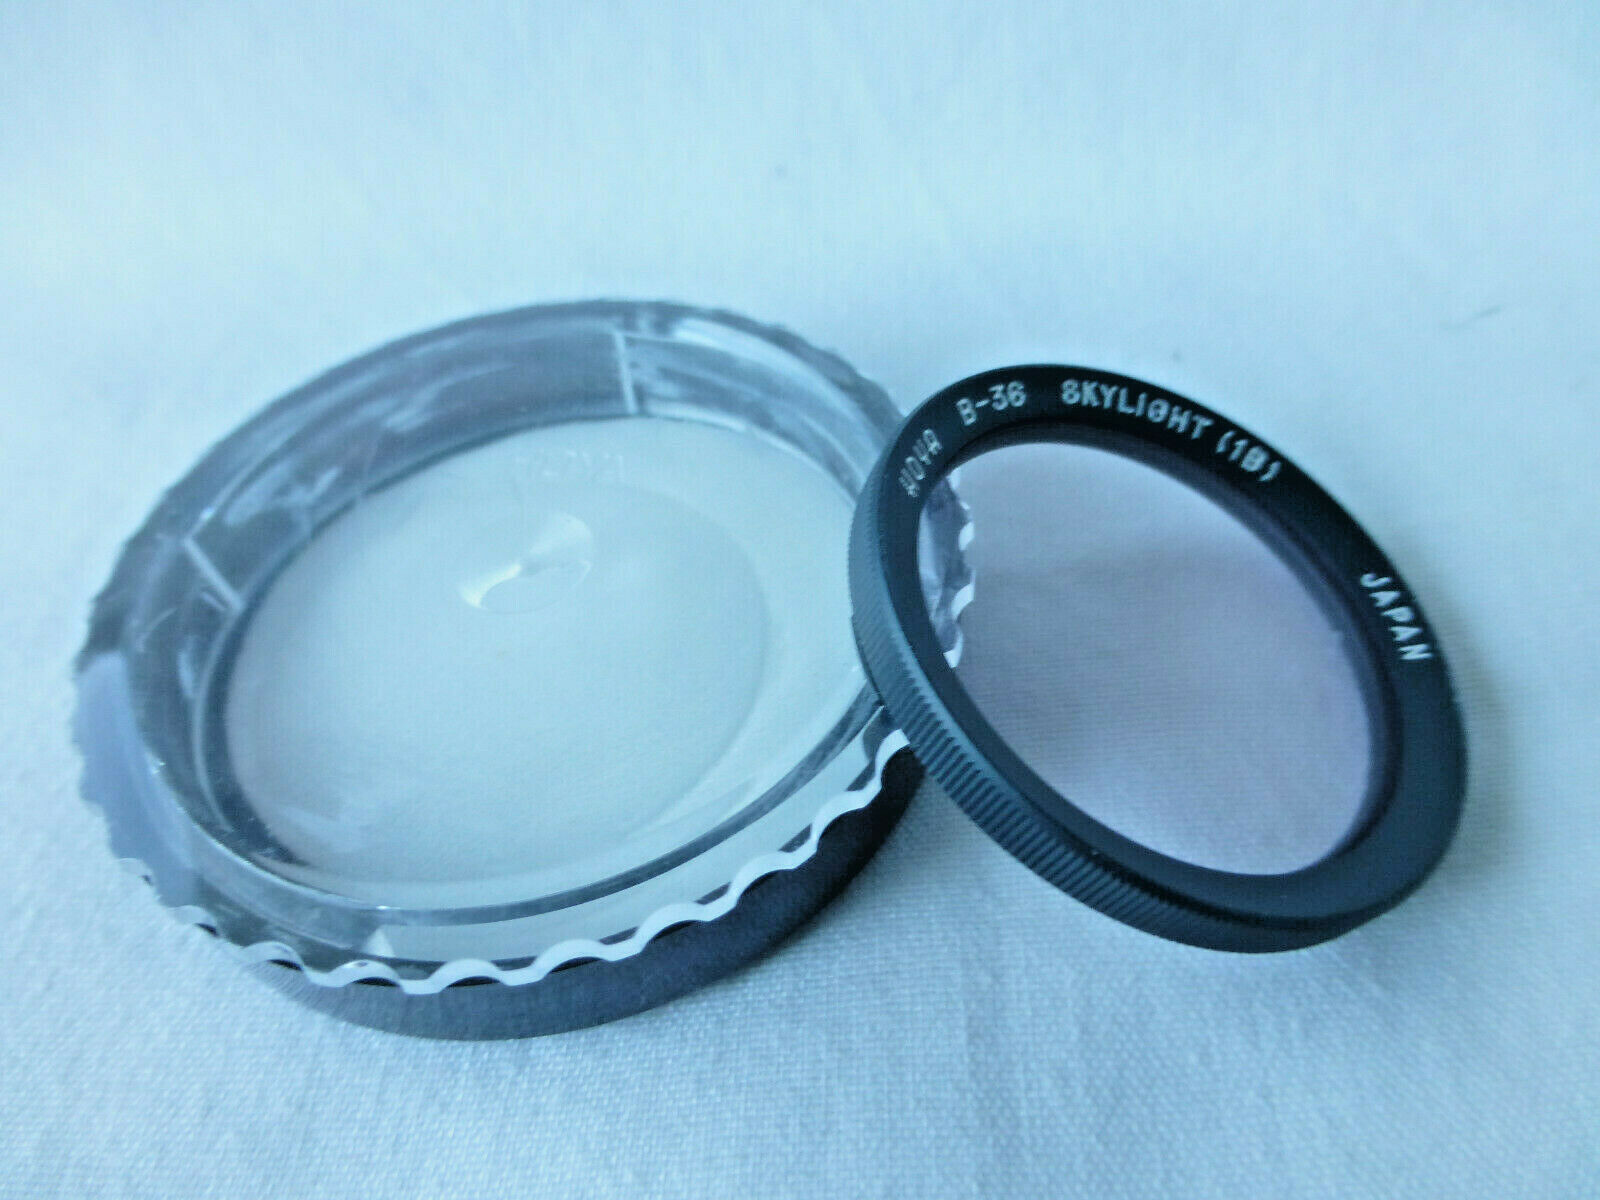 Primary image for Hoya B-36 Bayonet Skylight 1B Filter Made In Japan Used Bin #1281 30